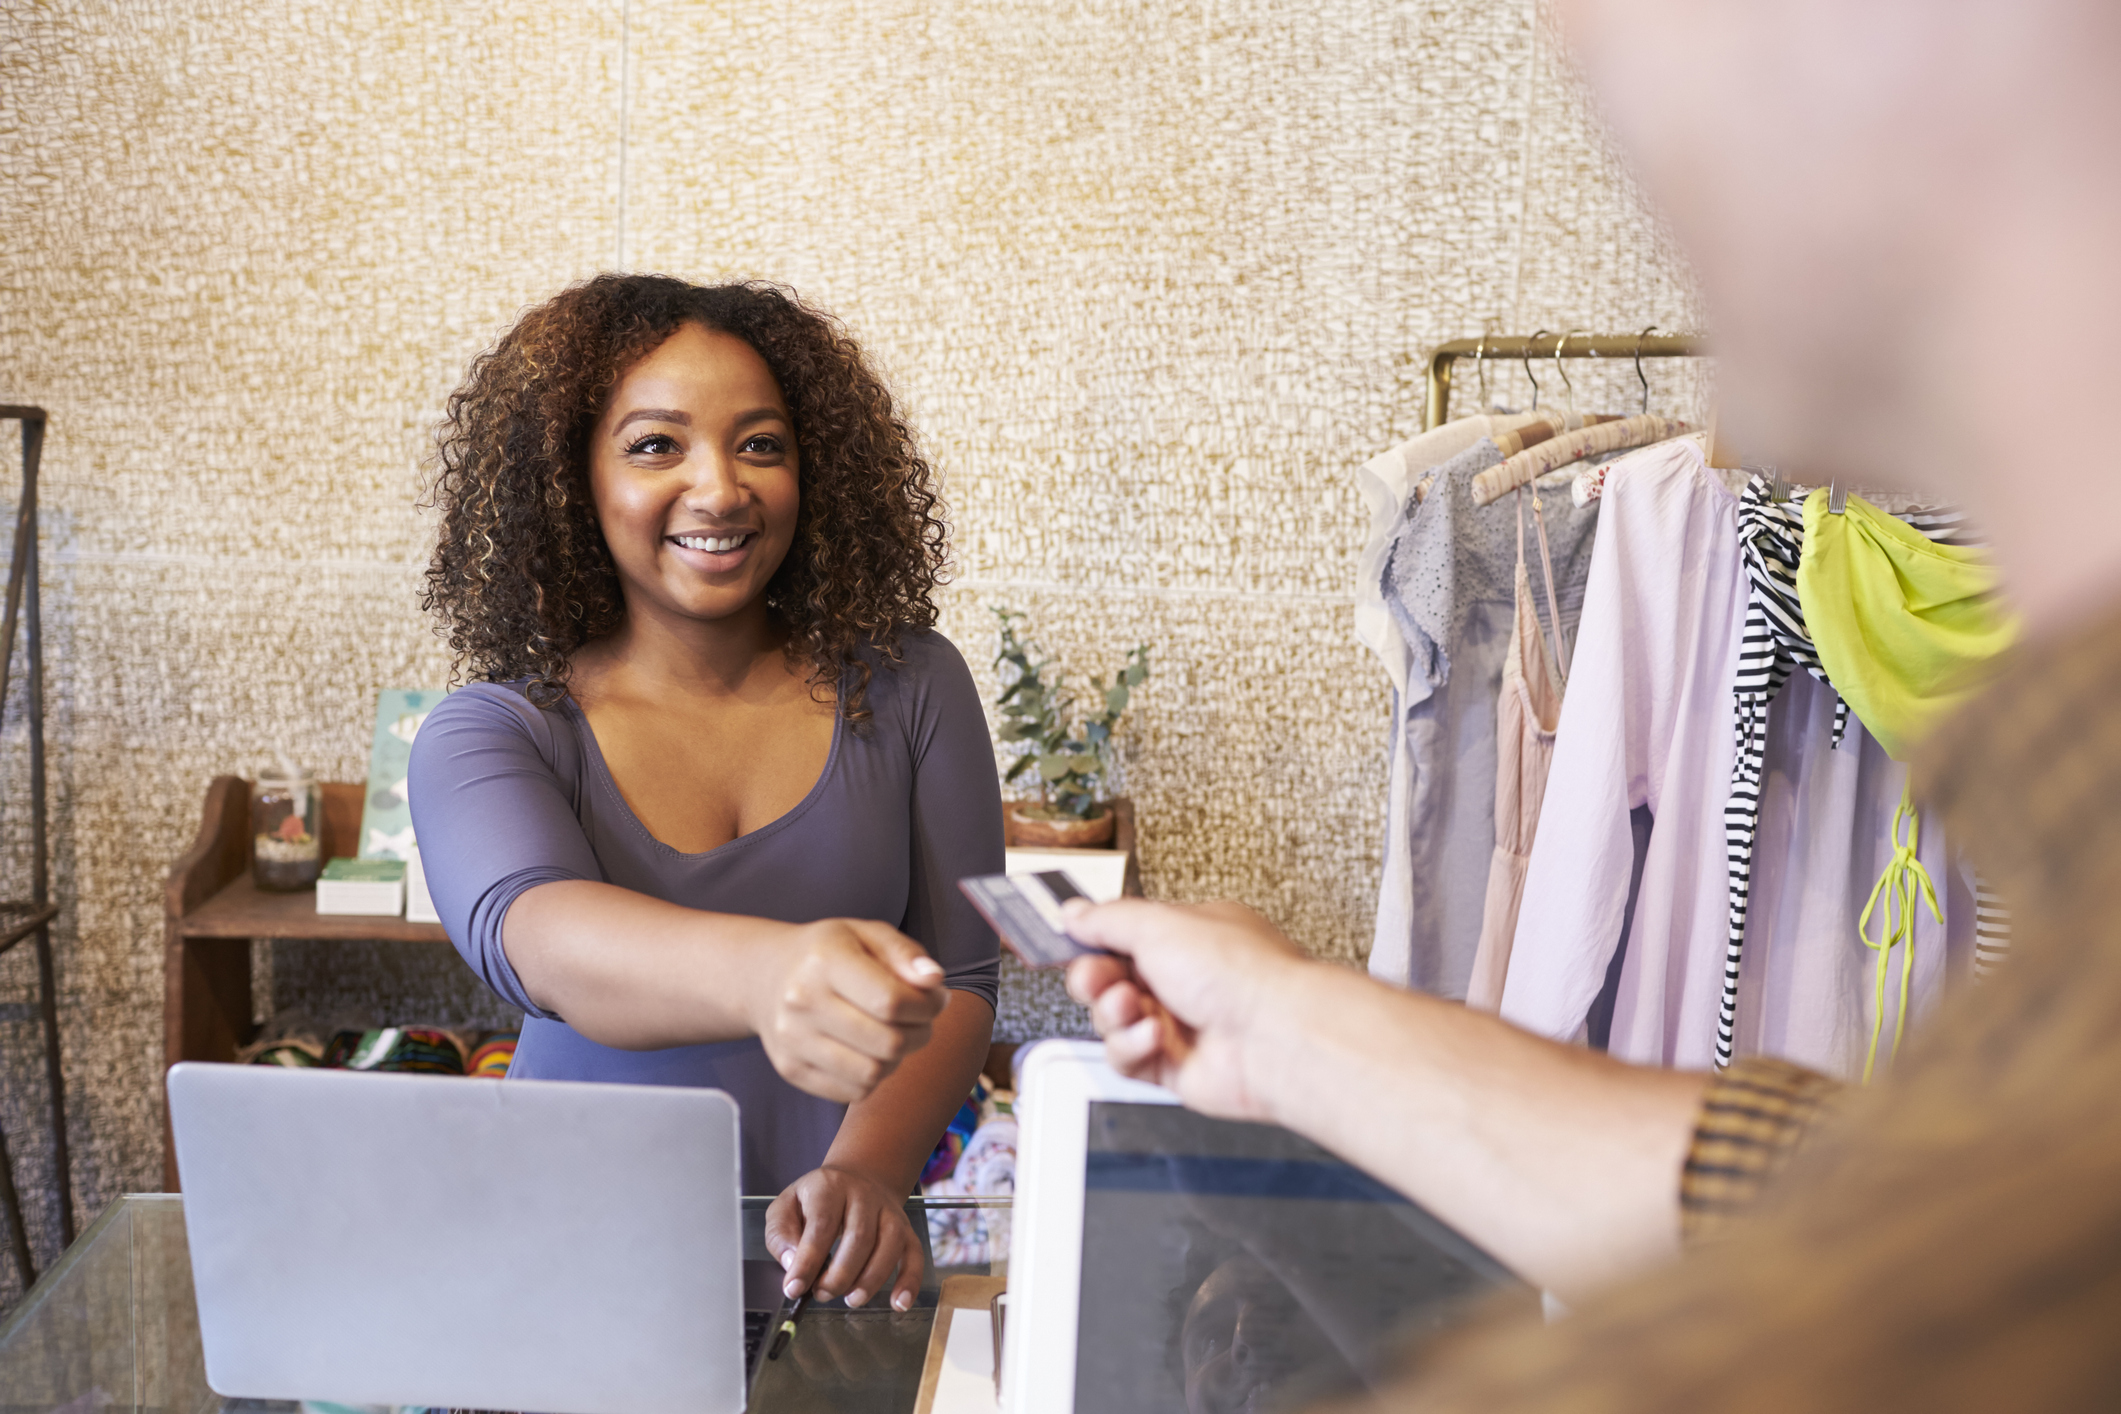 retail shopping returns marketing customer